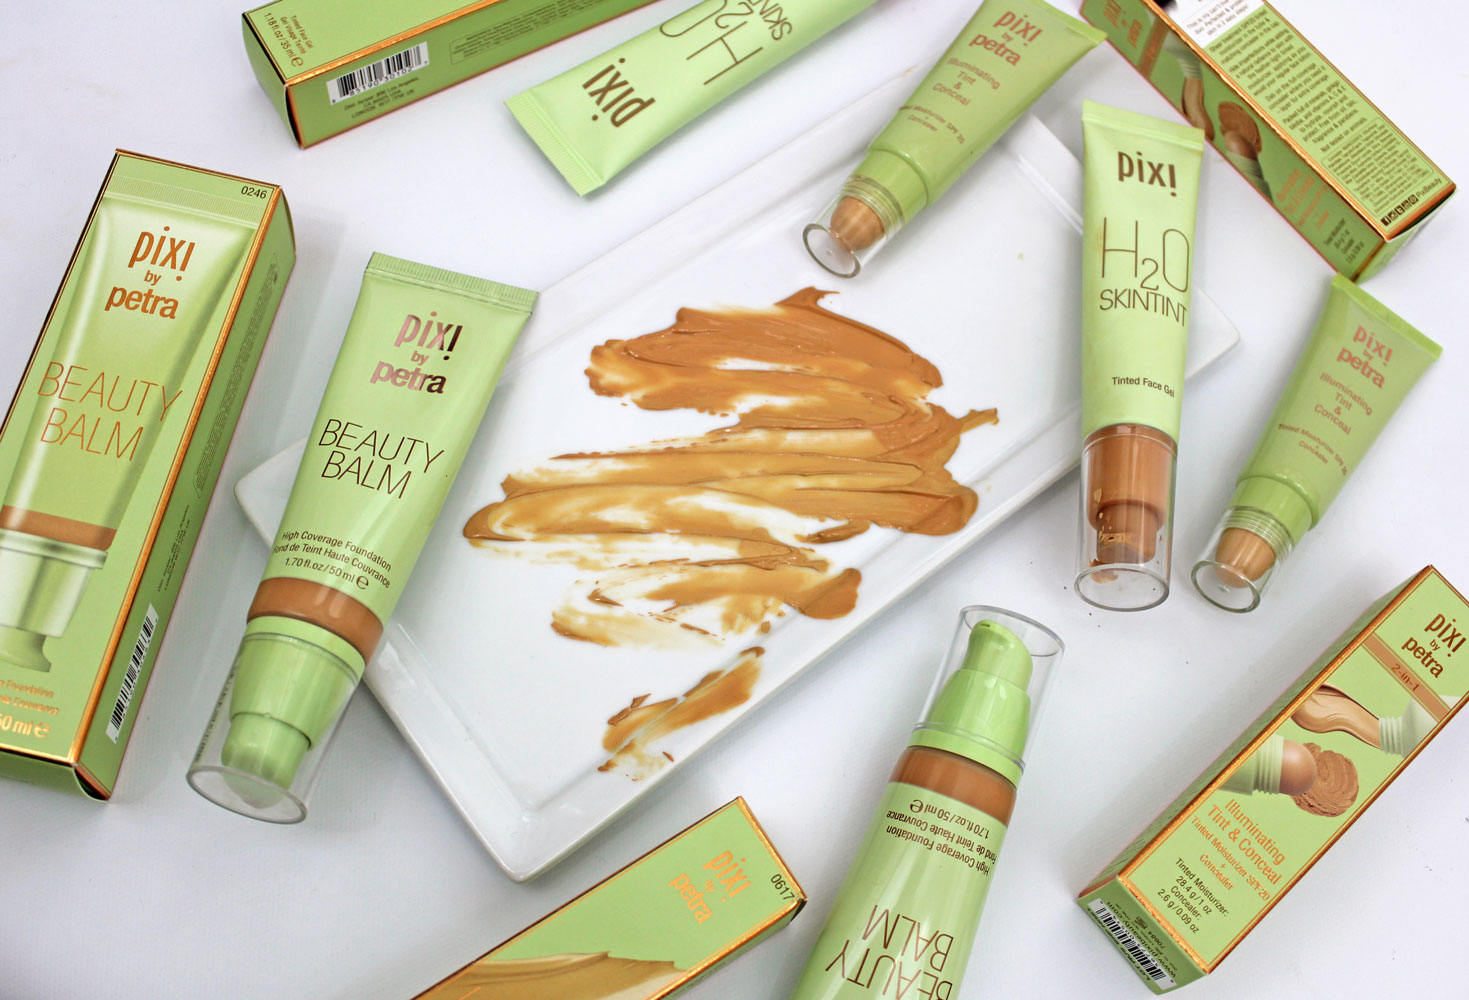 Pixi Beauty foundation comparison review